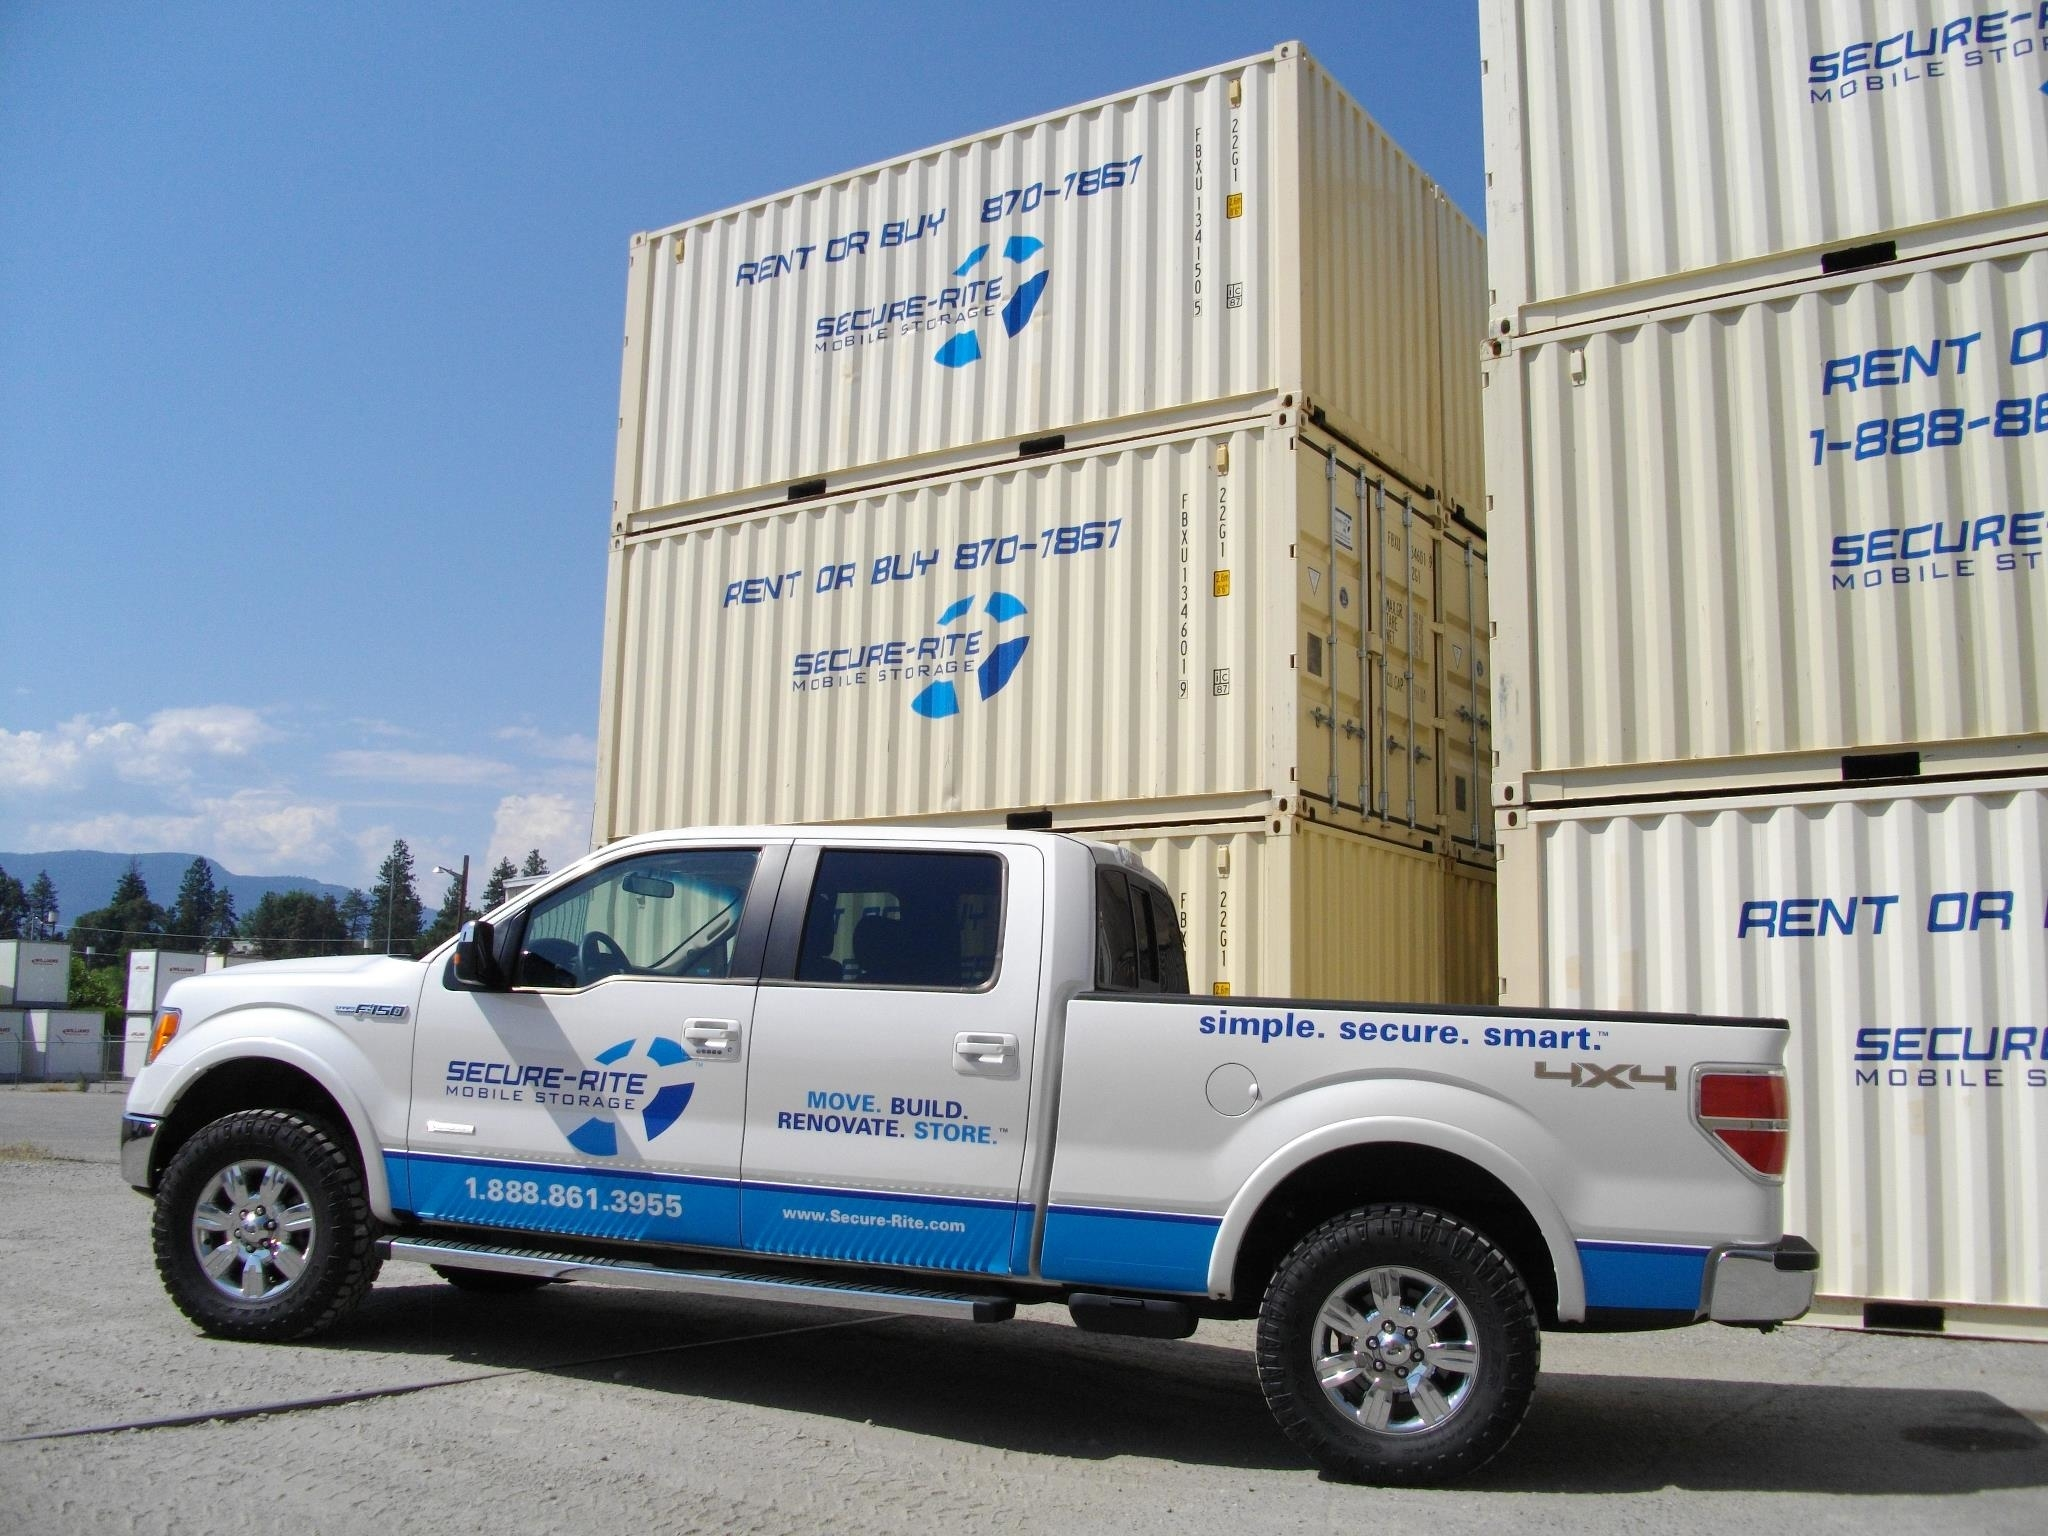 Secure-Rite Mobile Storage Kelowna (250)861-3955